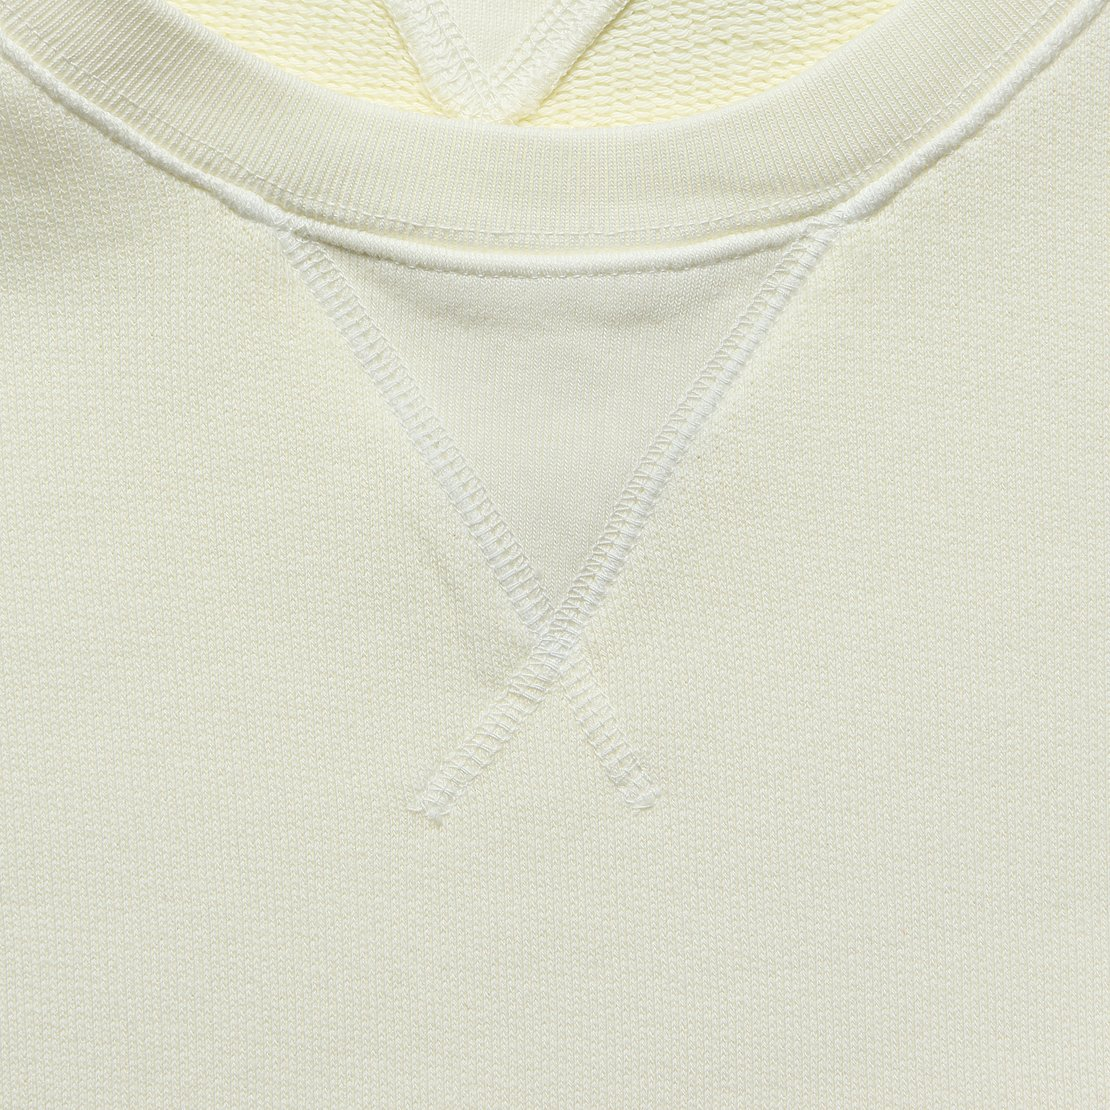 French Terry Sweatshirt - Natural